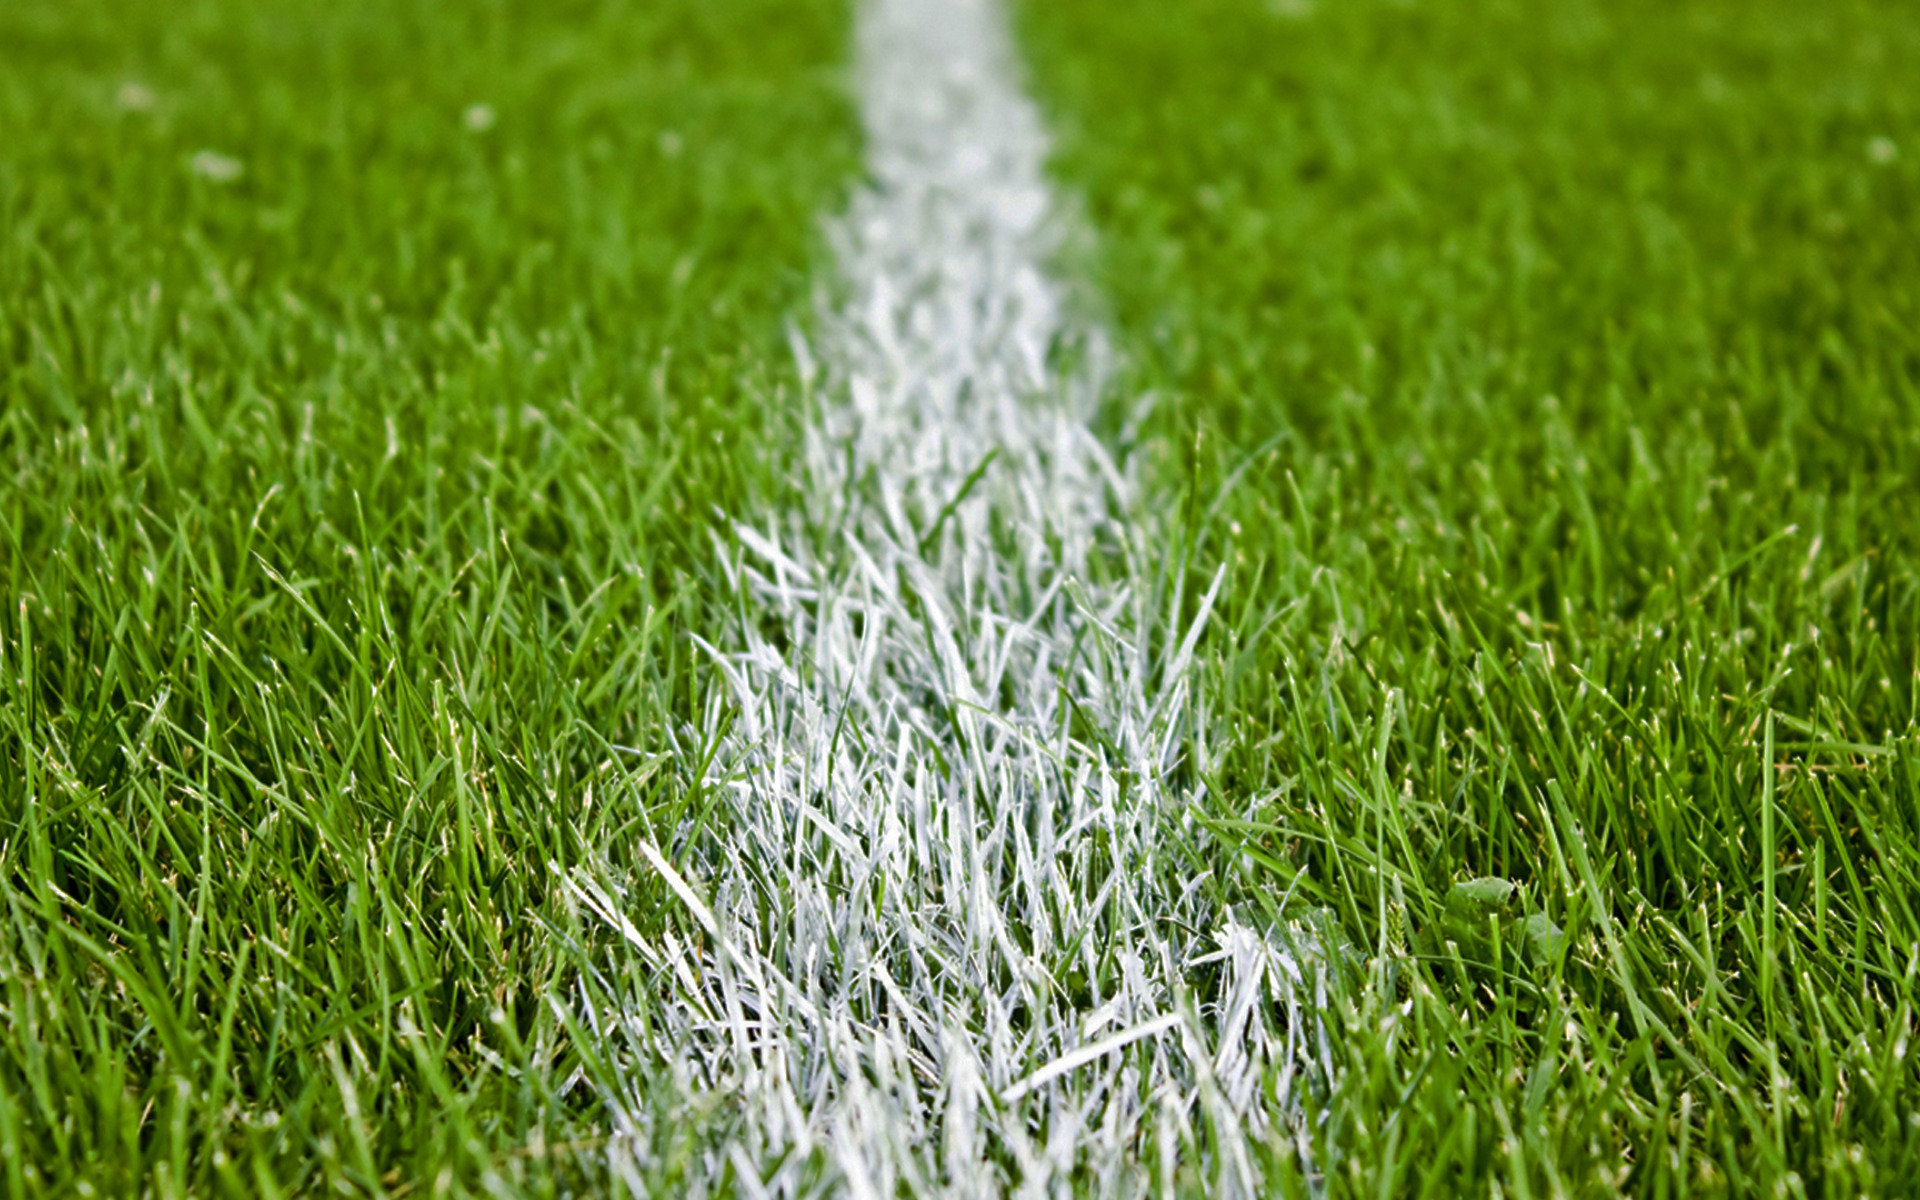 football-grass-pitch-101072